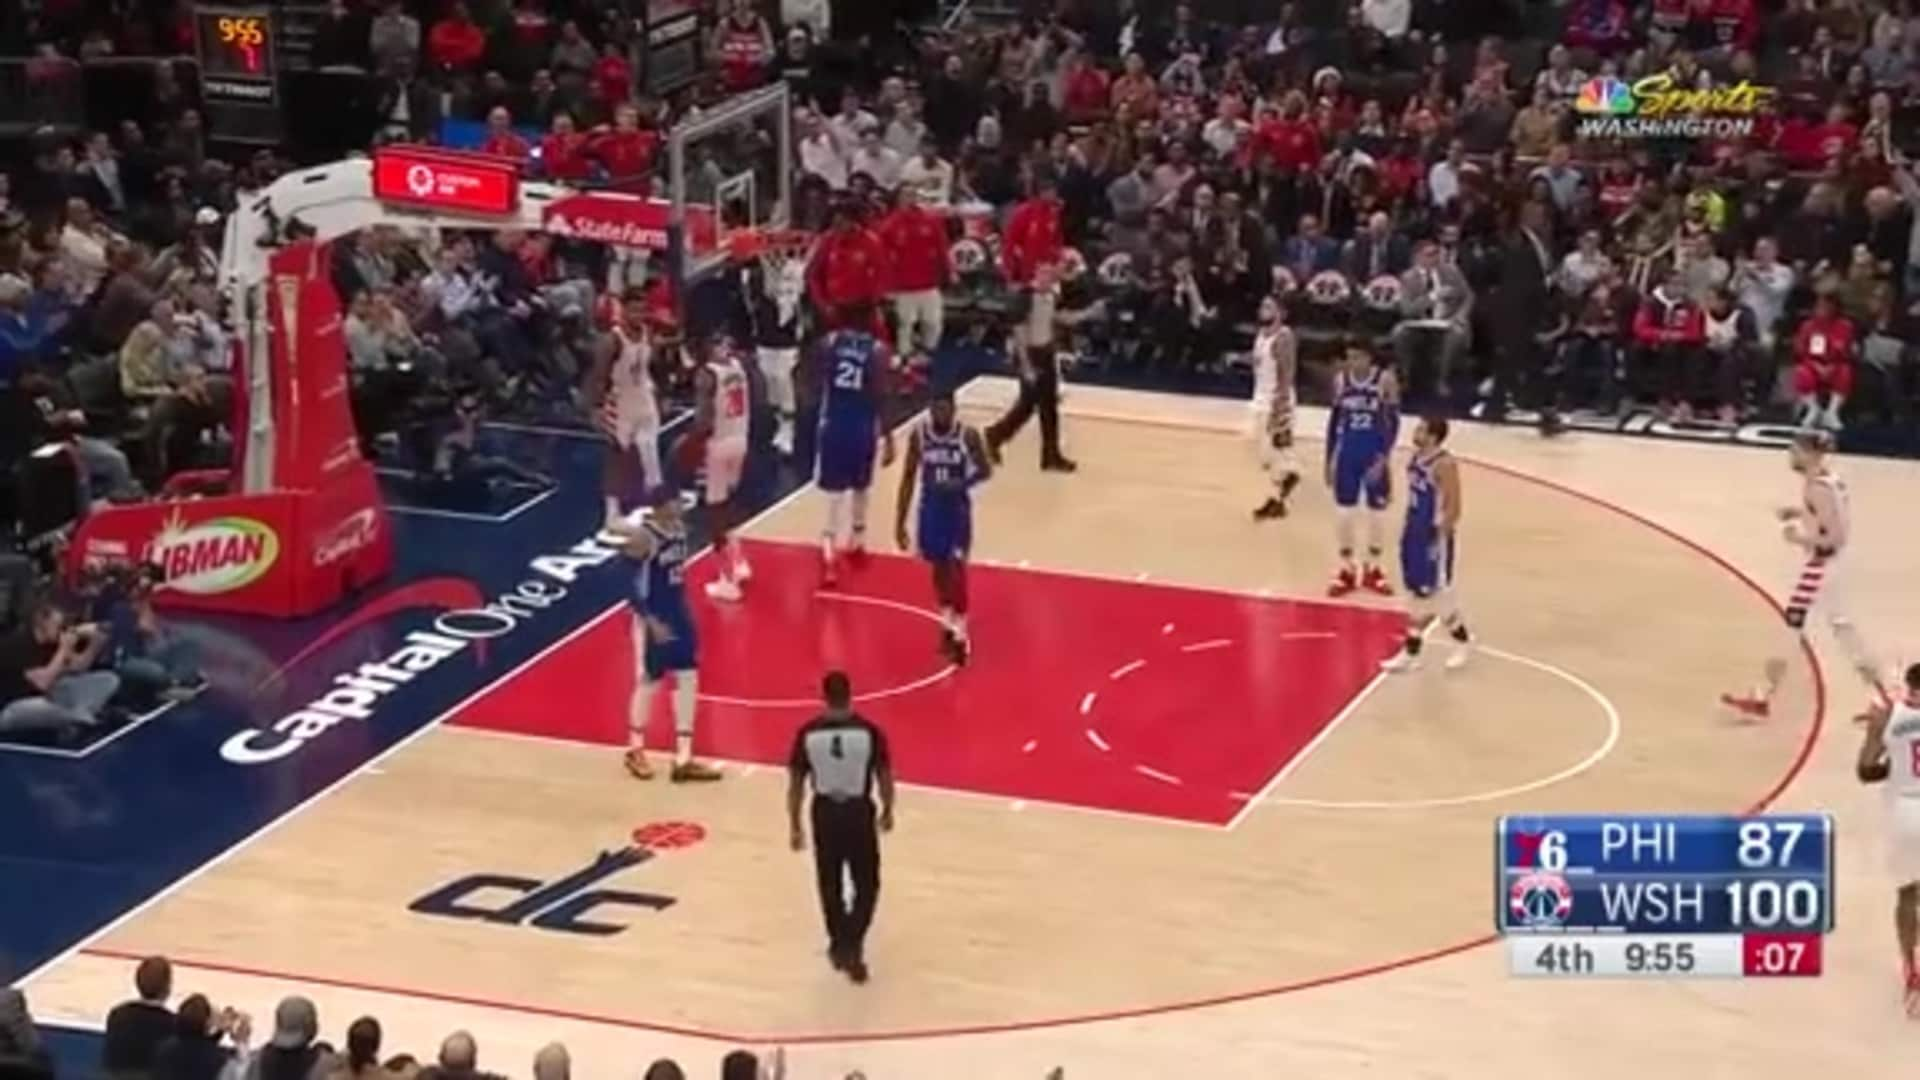 Highlights: Wizards vs. Sixers 12/05/19